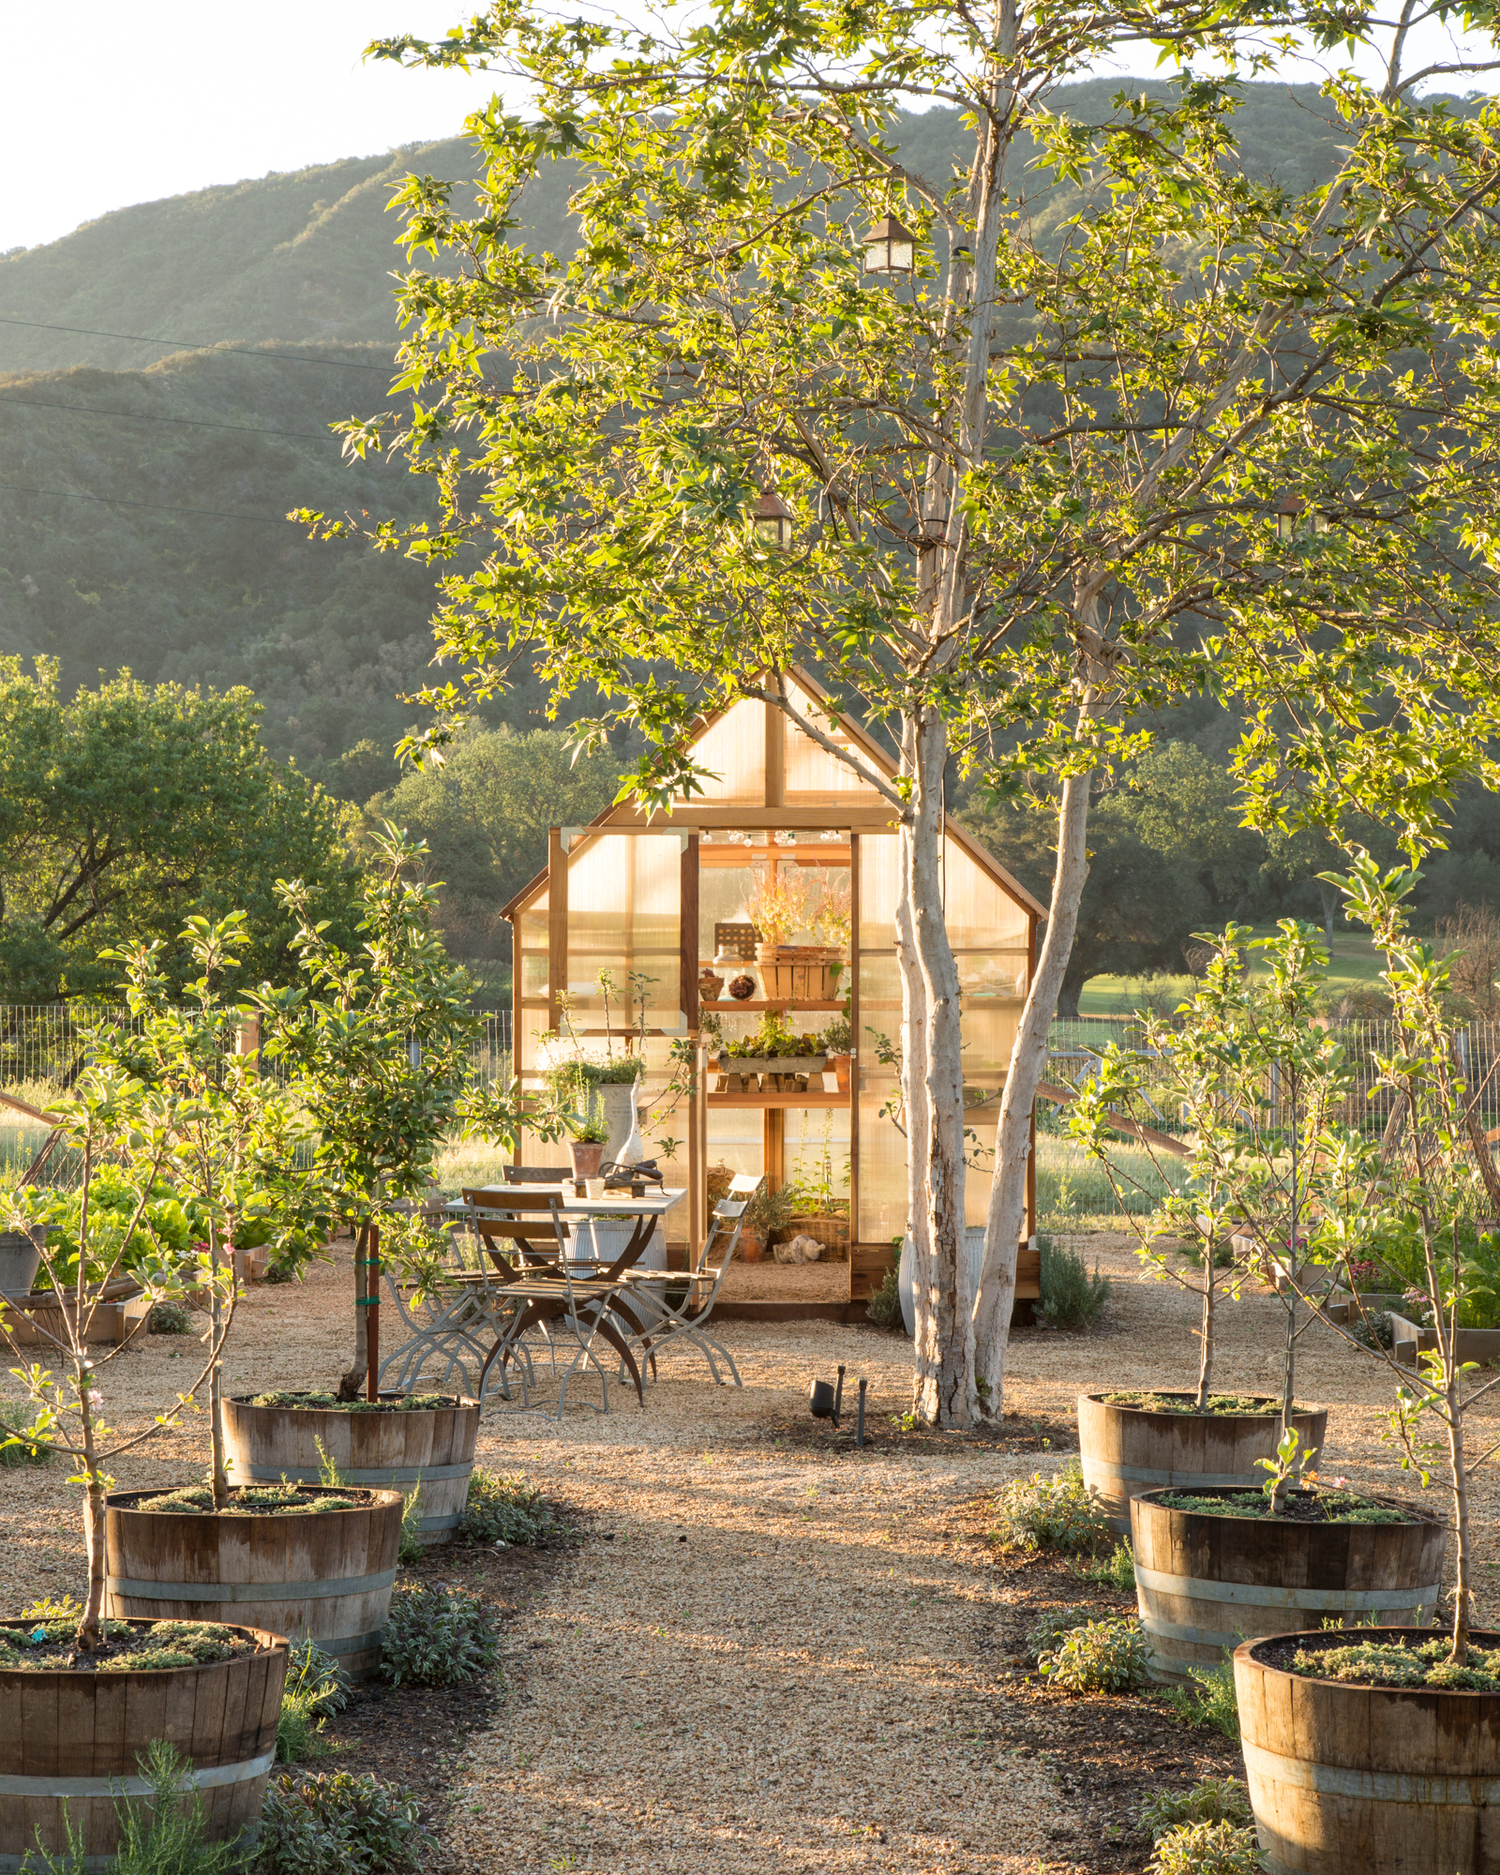 Greenhouse Inspiration - Greenhouse in pebble covered garden with boxplanters in meadow with rolling hills in background.